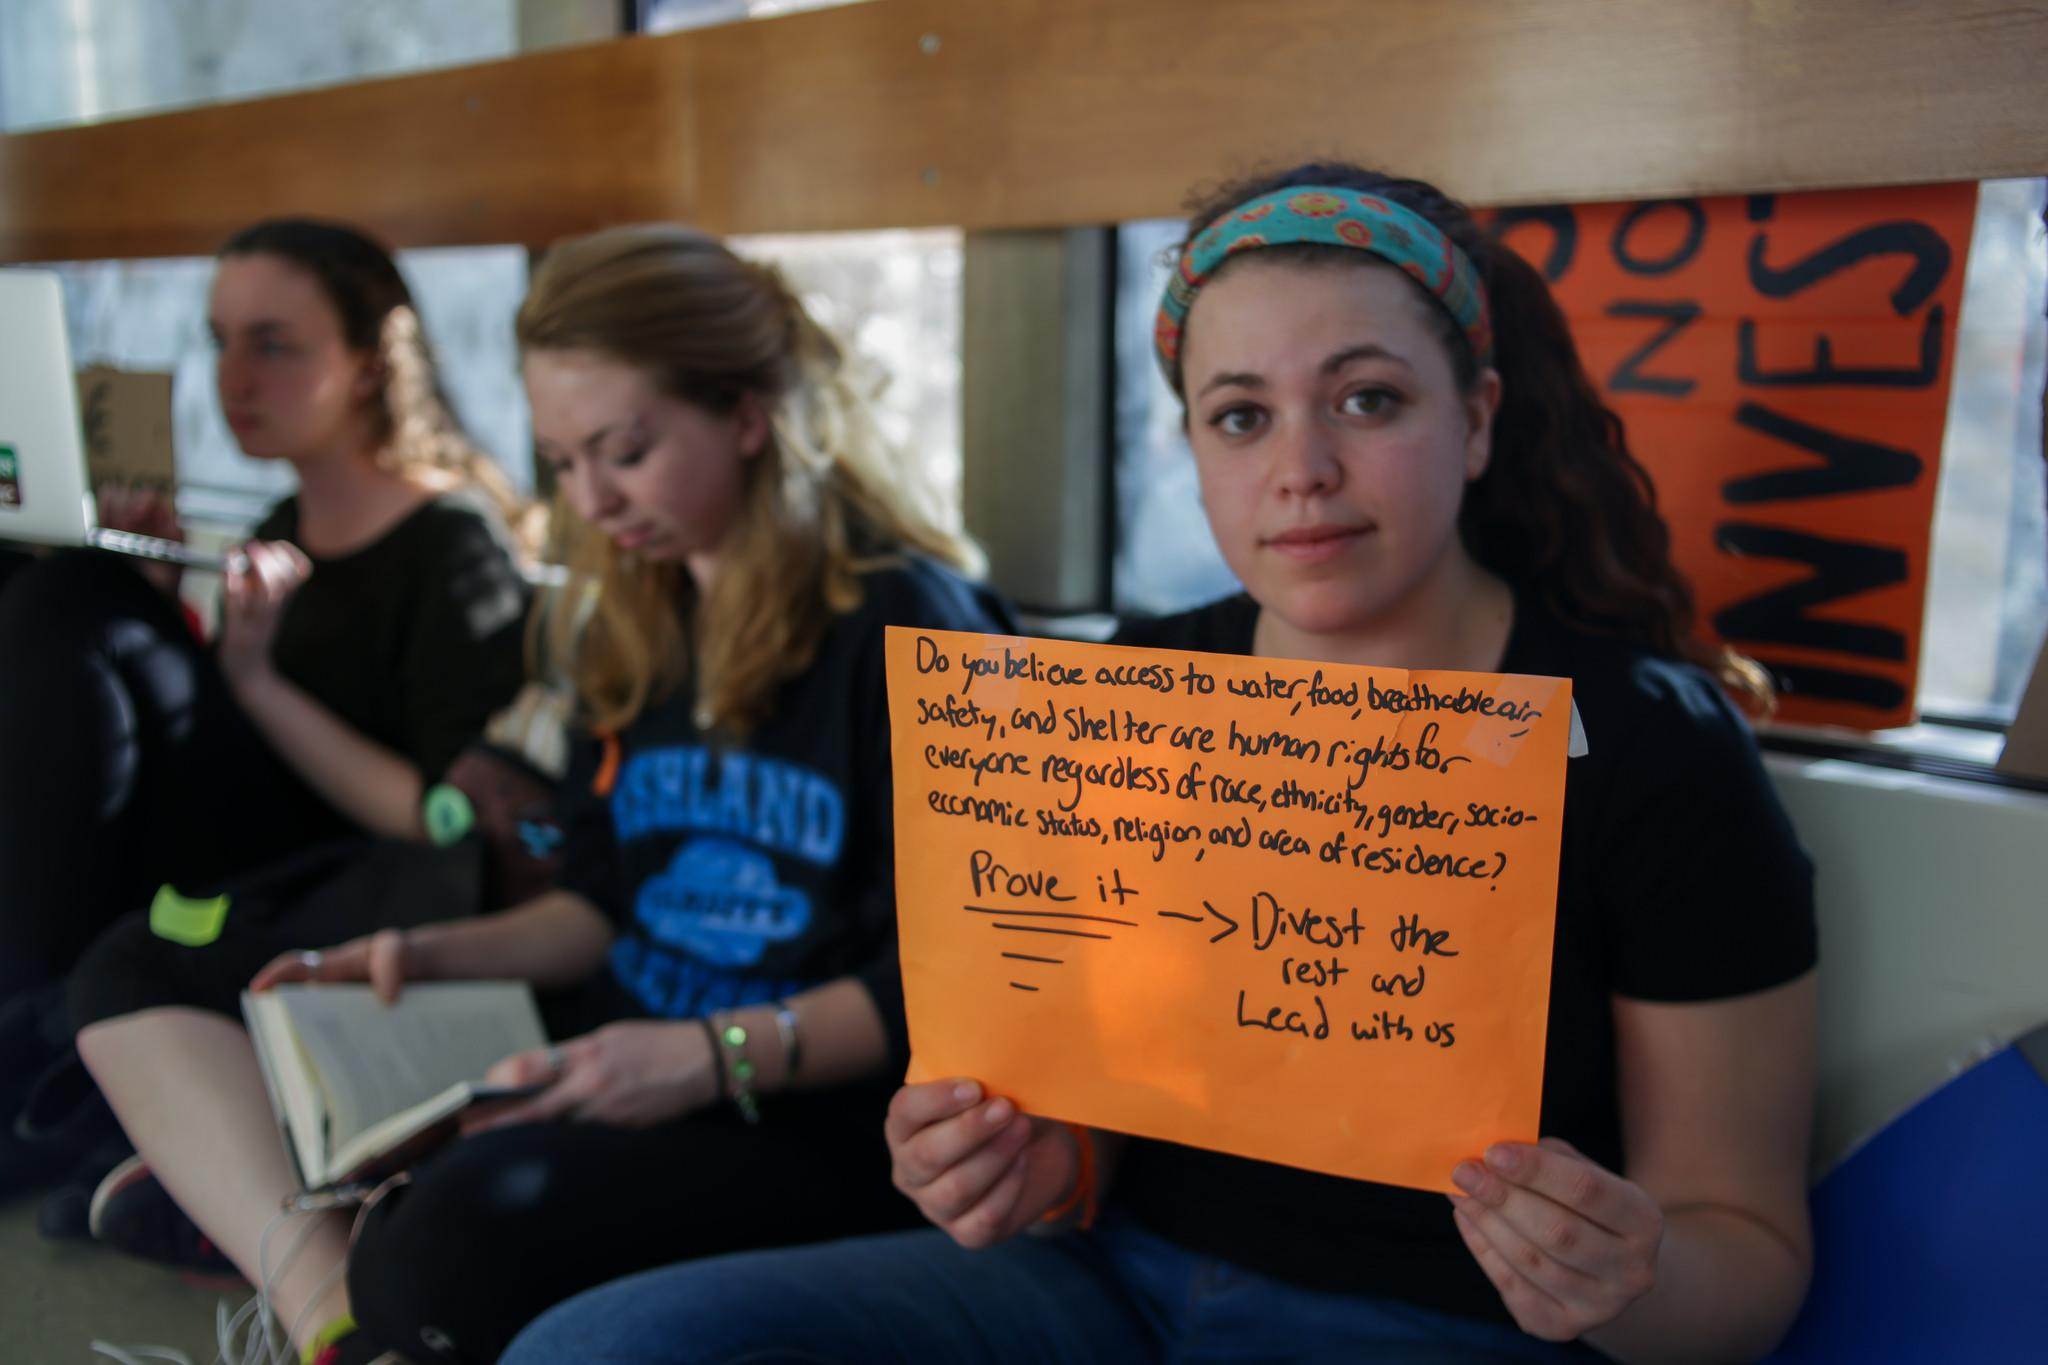 SLIDESHOW: Divest the Rest sit-in, day 2